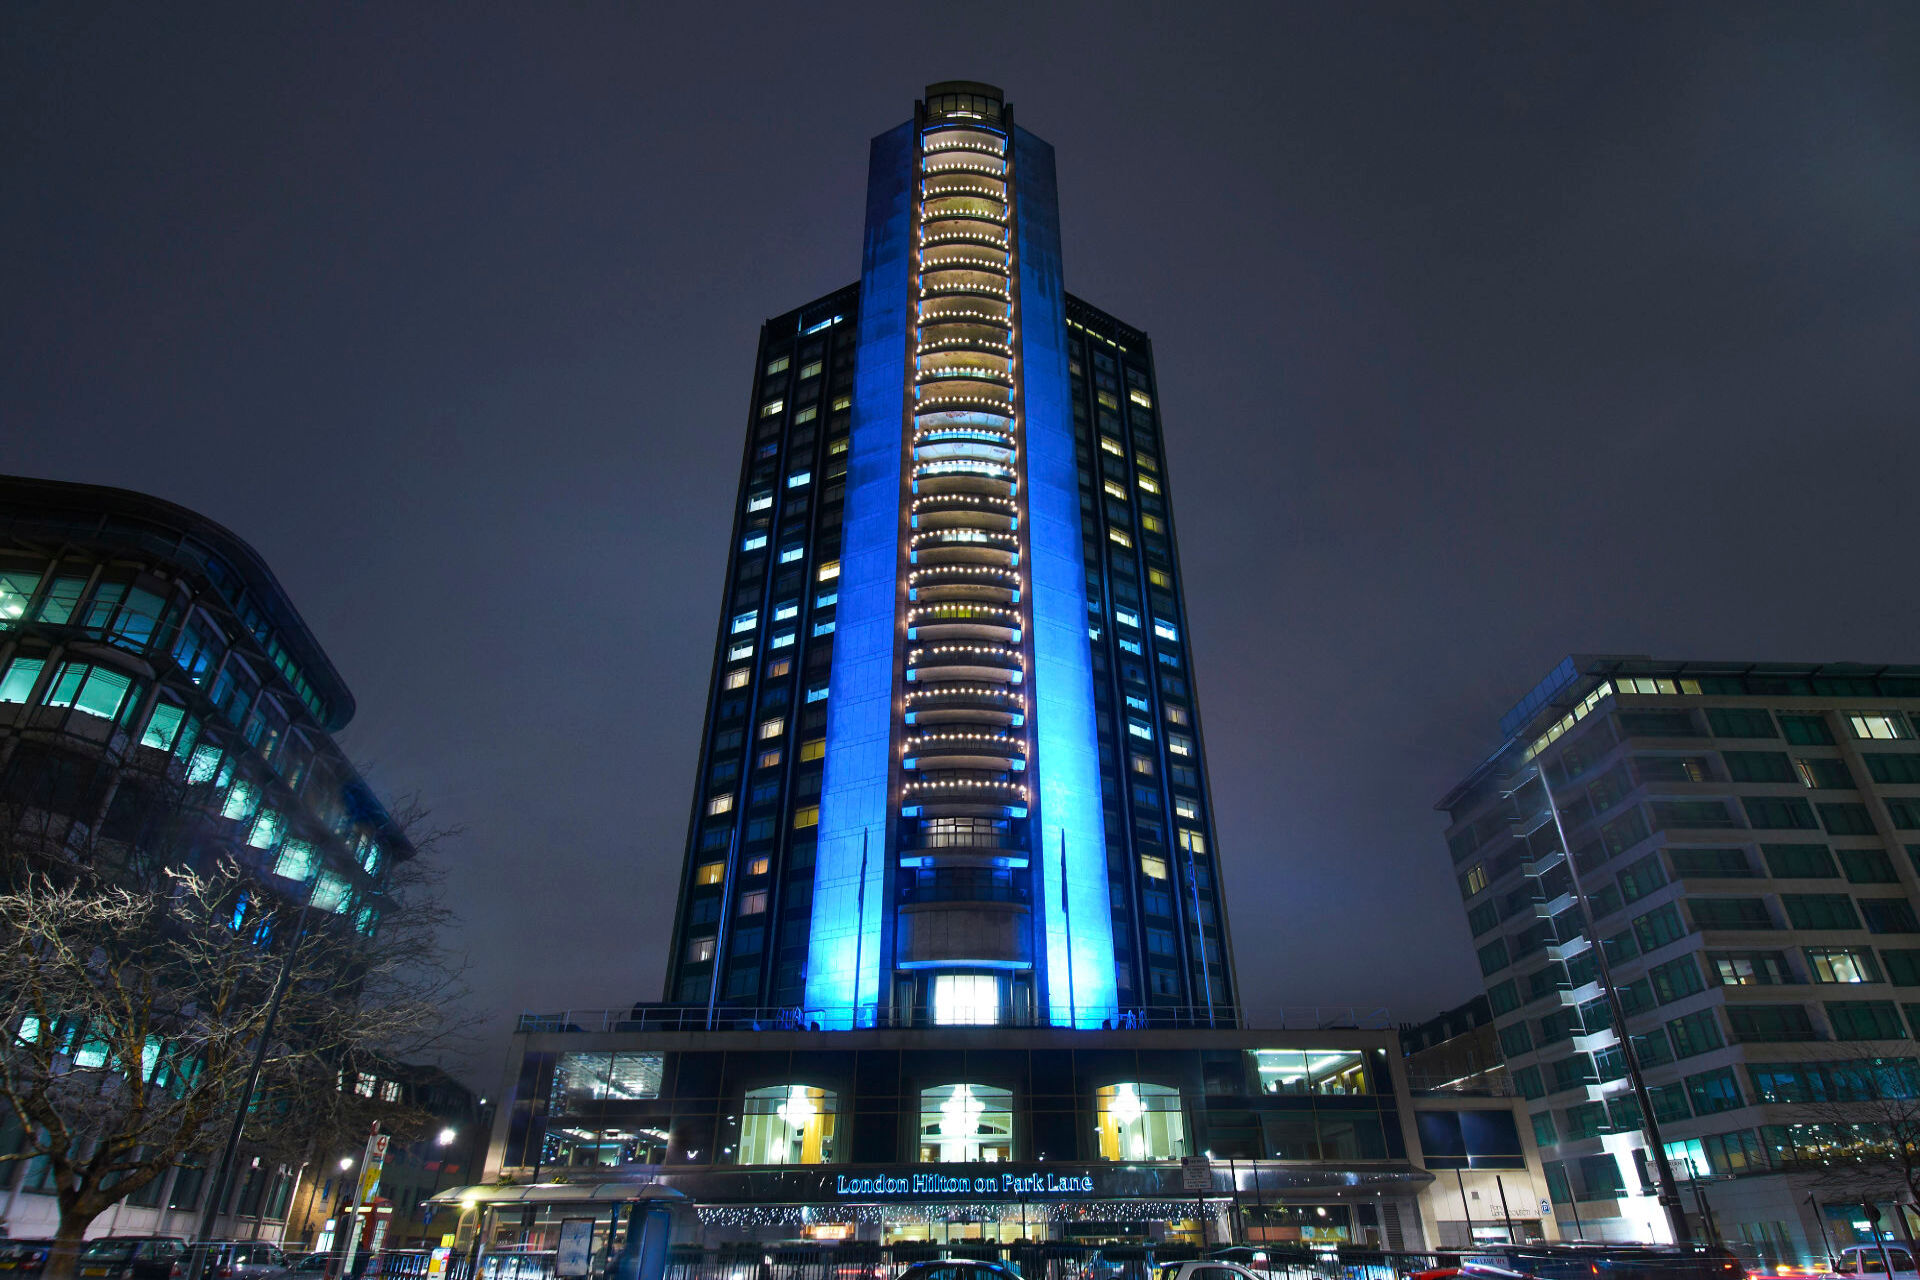 London Hilton on Park Lane Venues